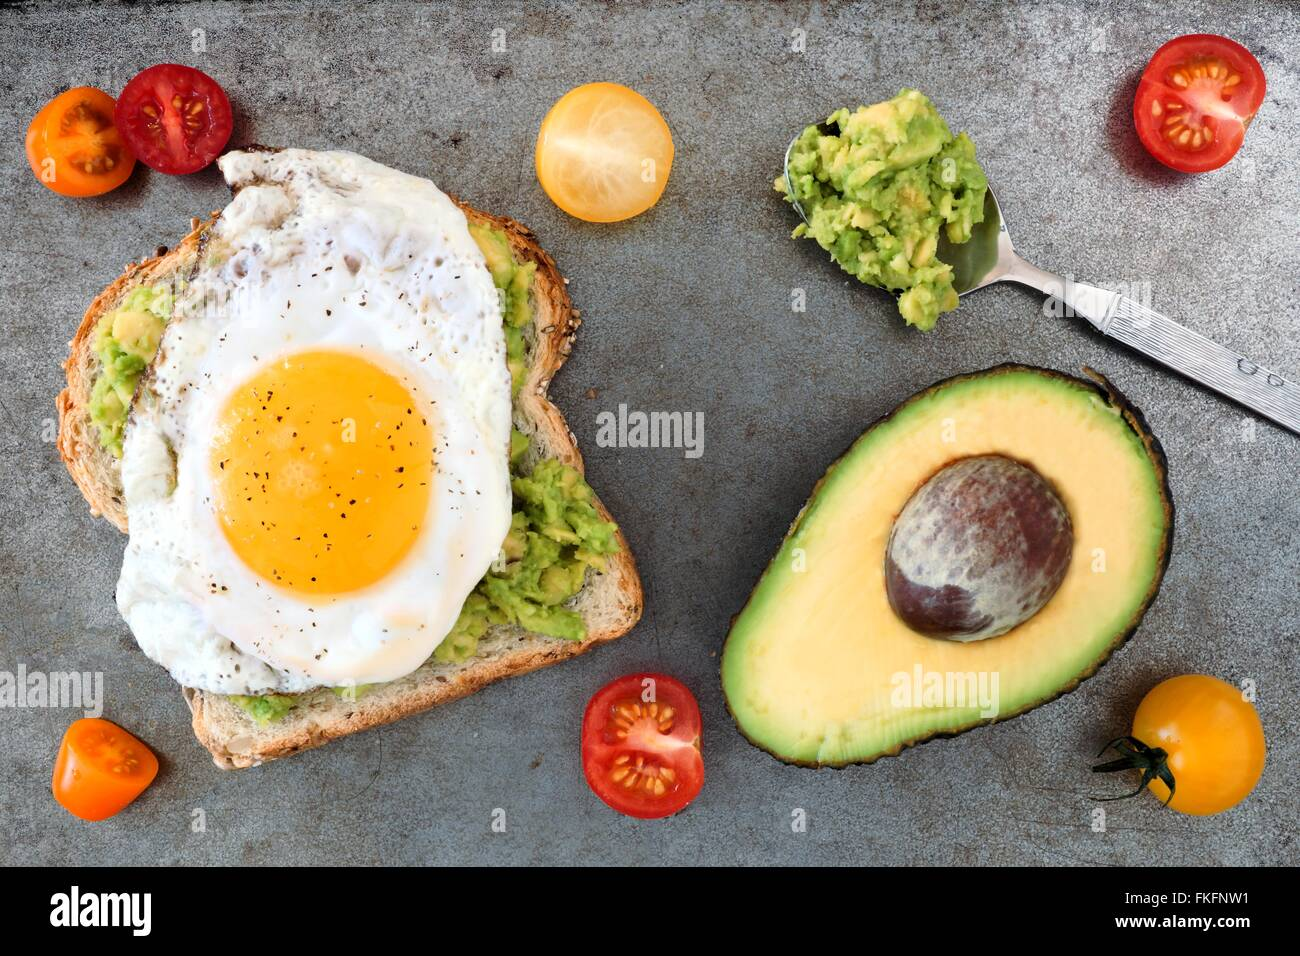 Open avocado, egg sandwich on whole grain bread with cherry tomatoes on rustic baking tray - Stock Image